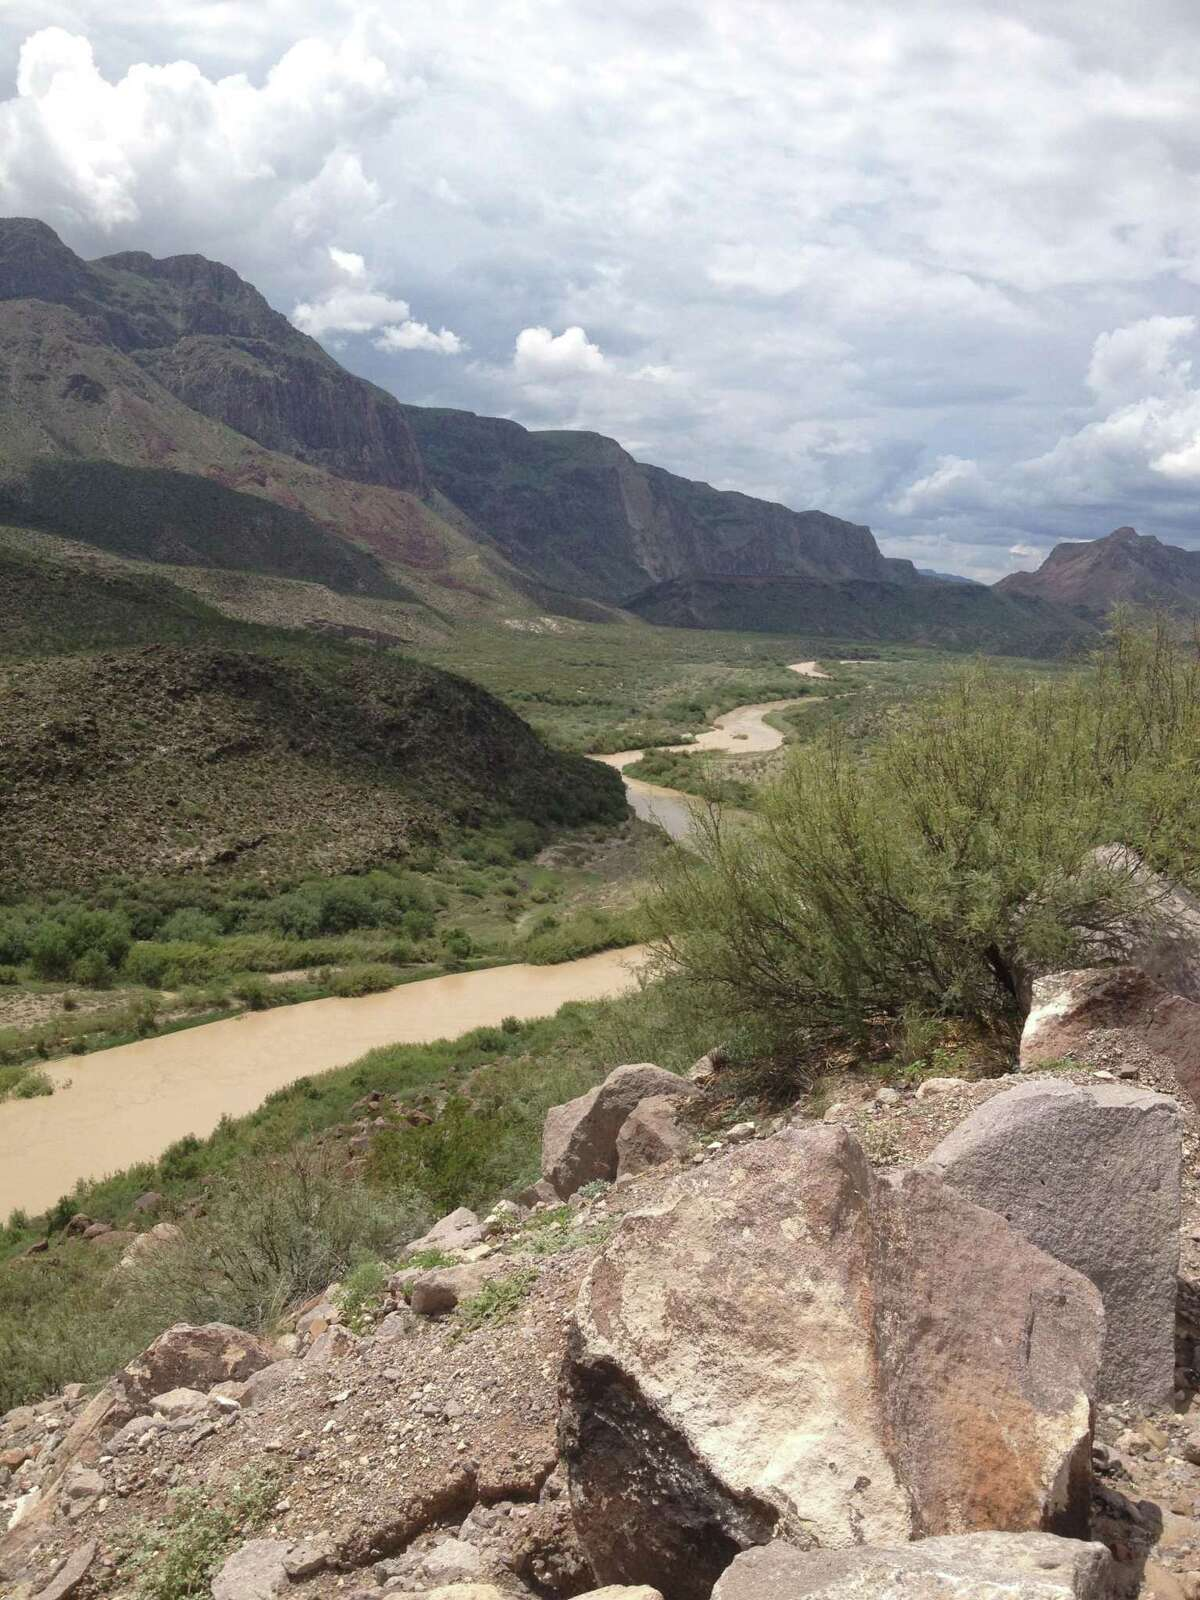 In rugged far west Texas, crossing the Rio Grande is a comparatively minor challenge for undocumented immigrants.